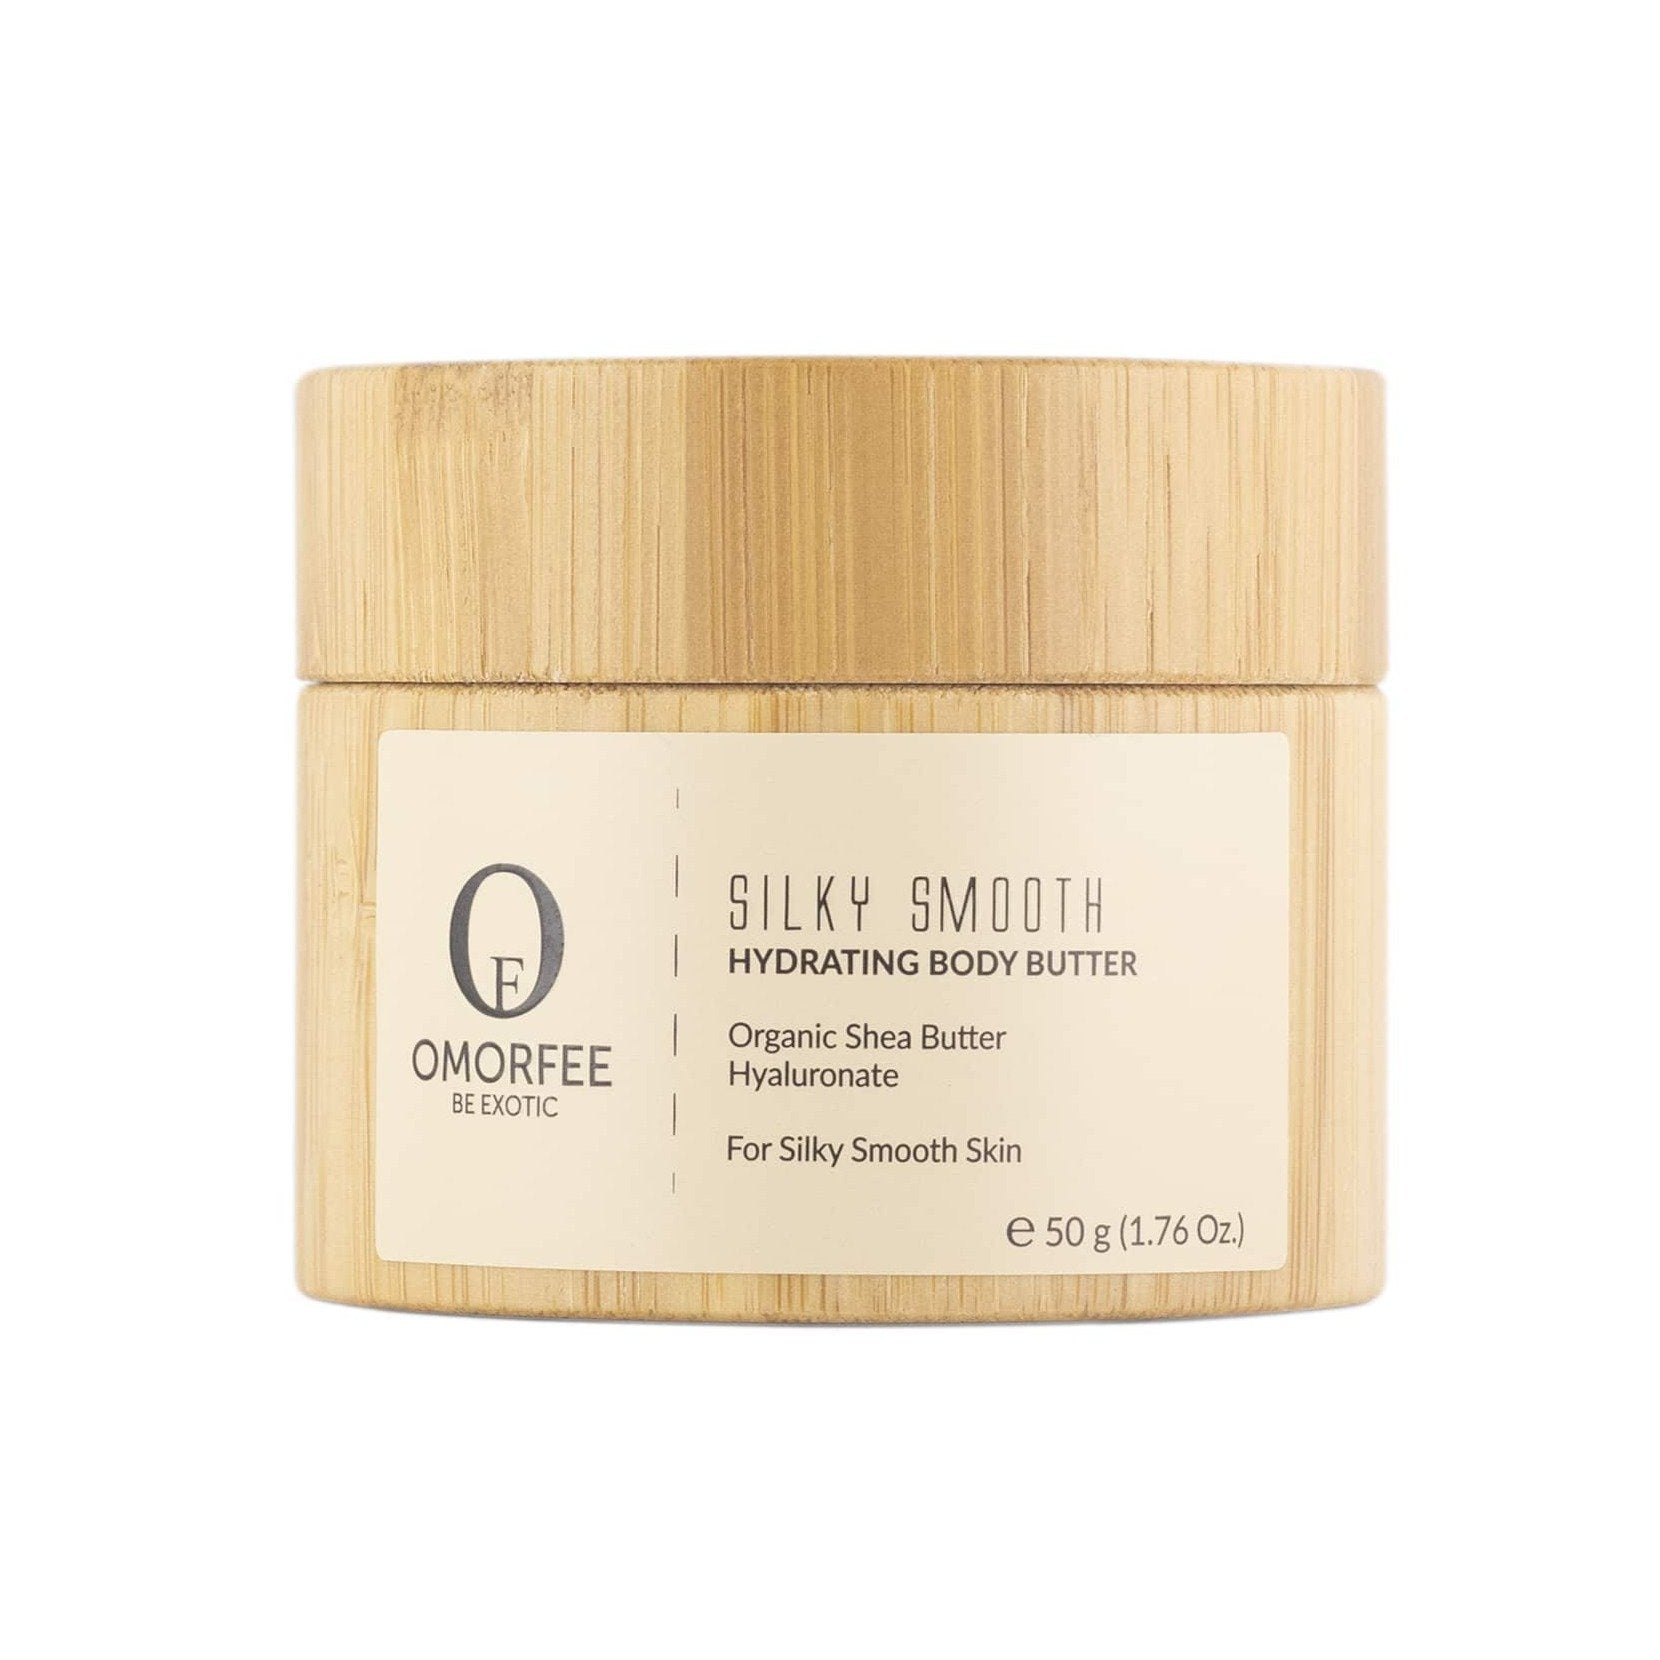 Silky Smooth Hydrating Body Butter